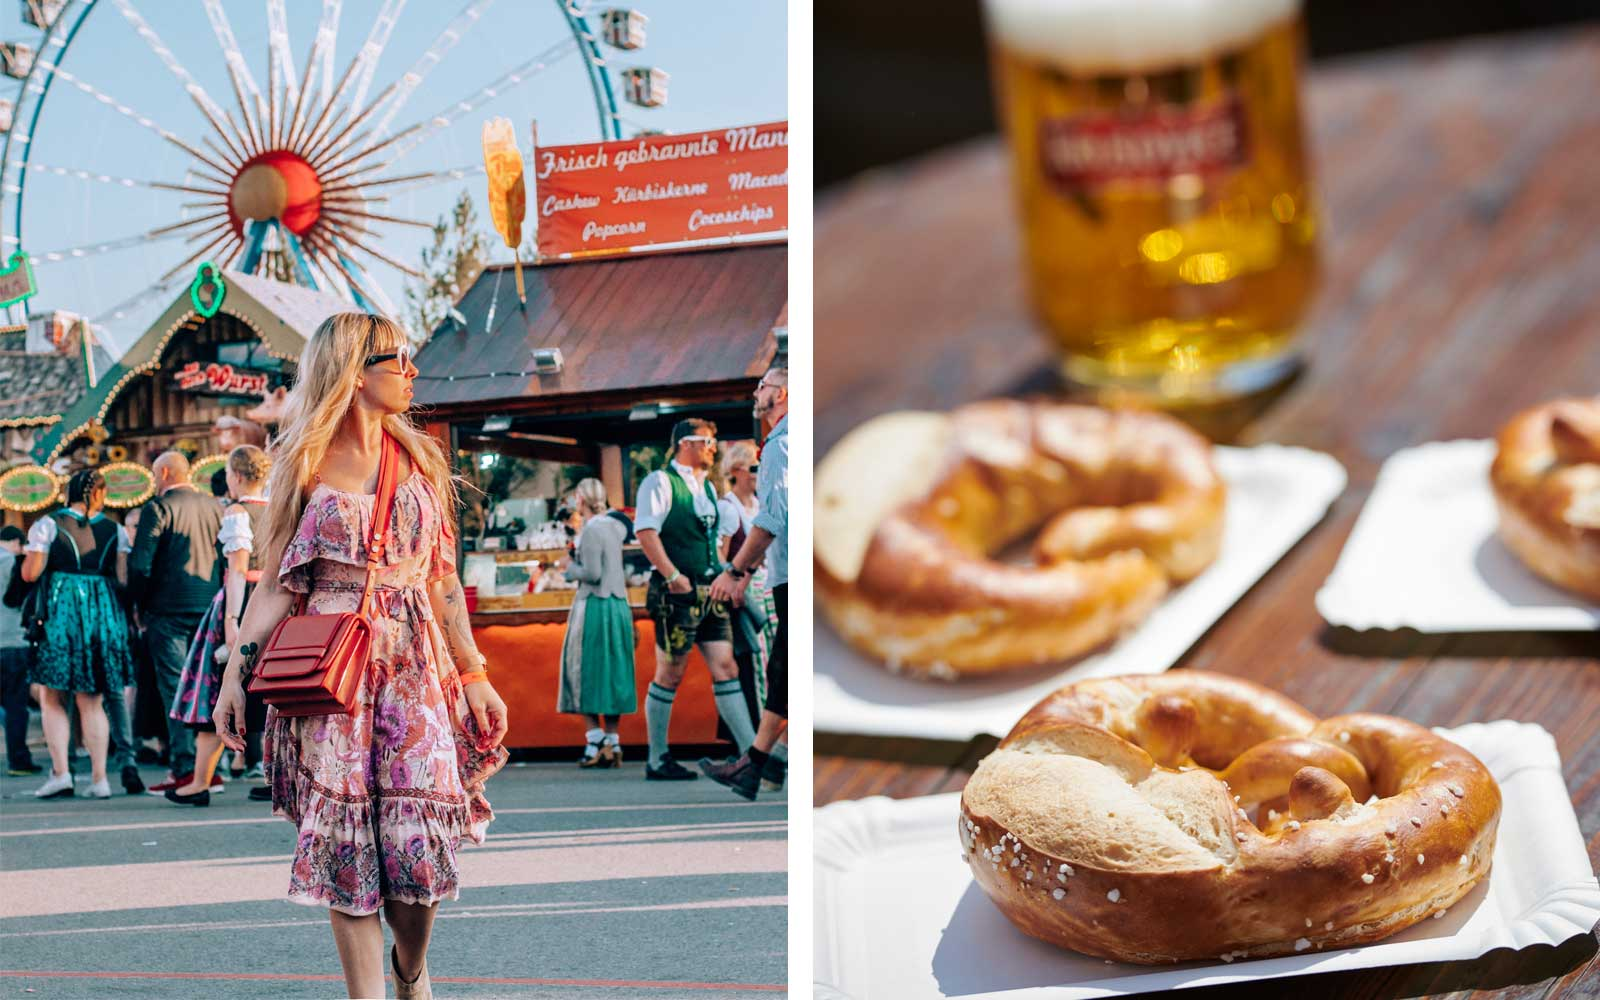 Cruise Down the Danube on This Eight-day Trip With a VIP Stop at Oktoberfest